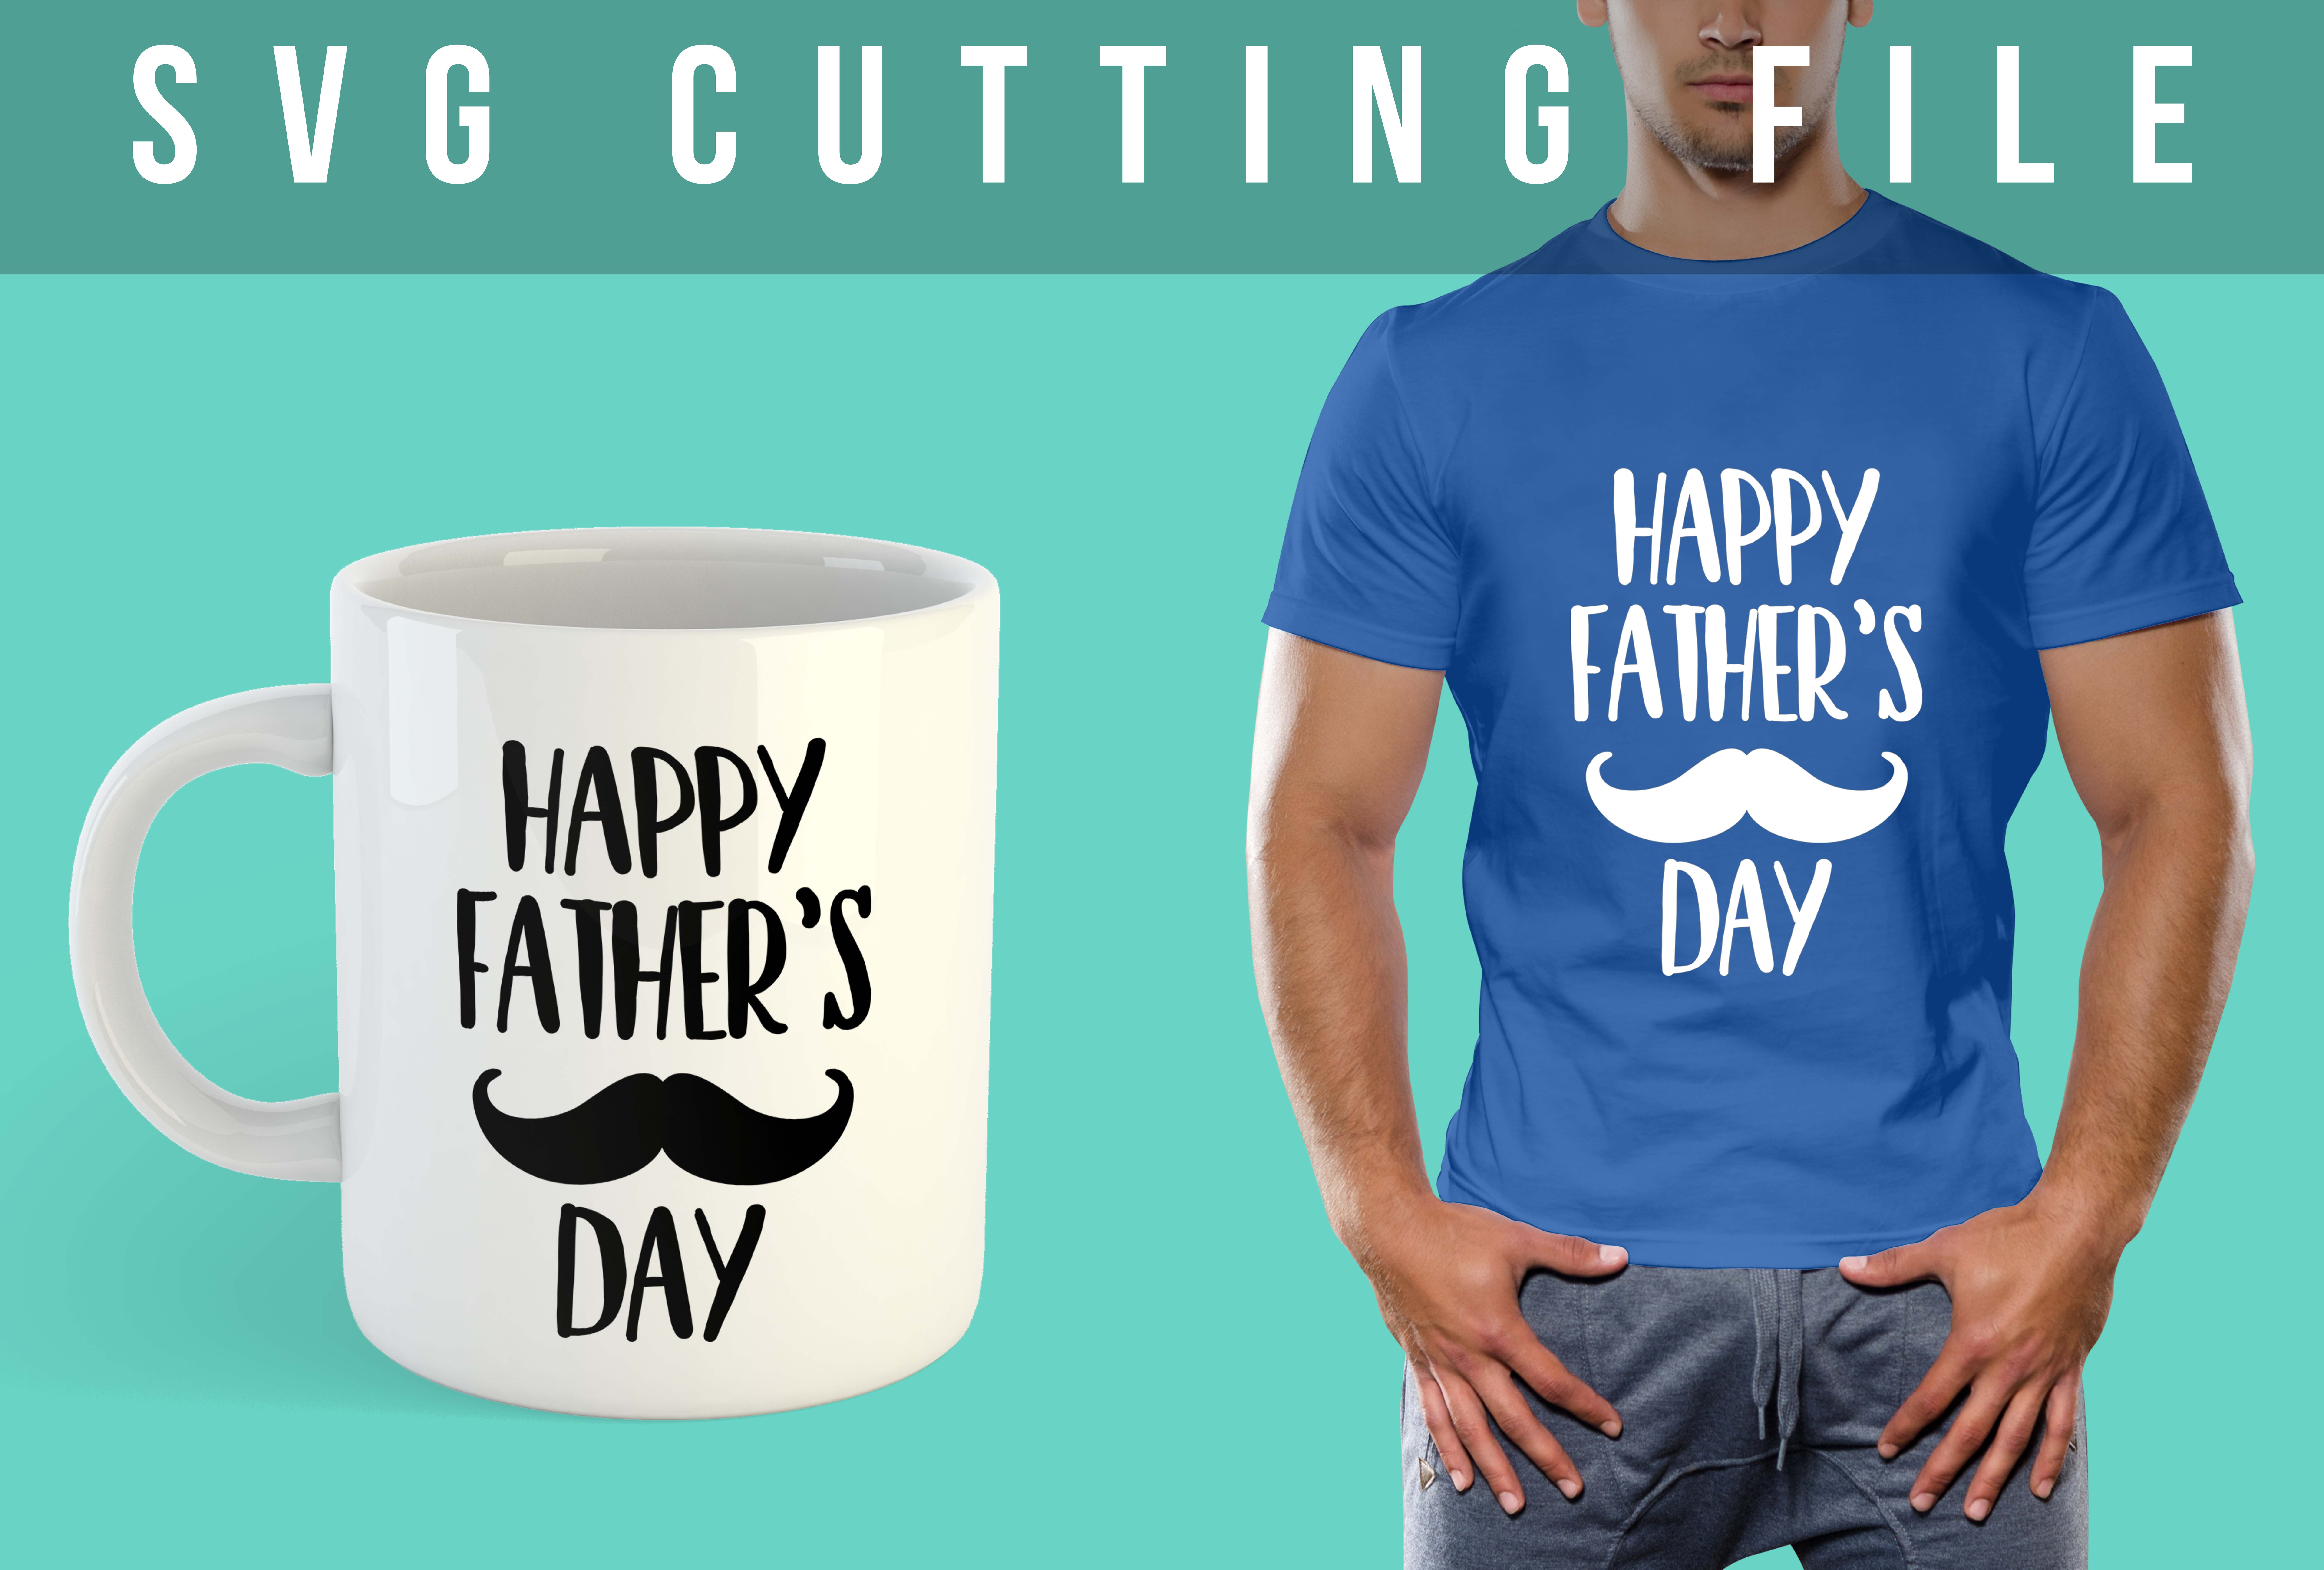 Happy father's day SVG PNG EPS DXF Father svg cutting file example image 4